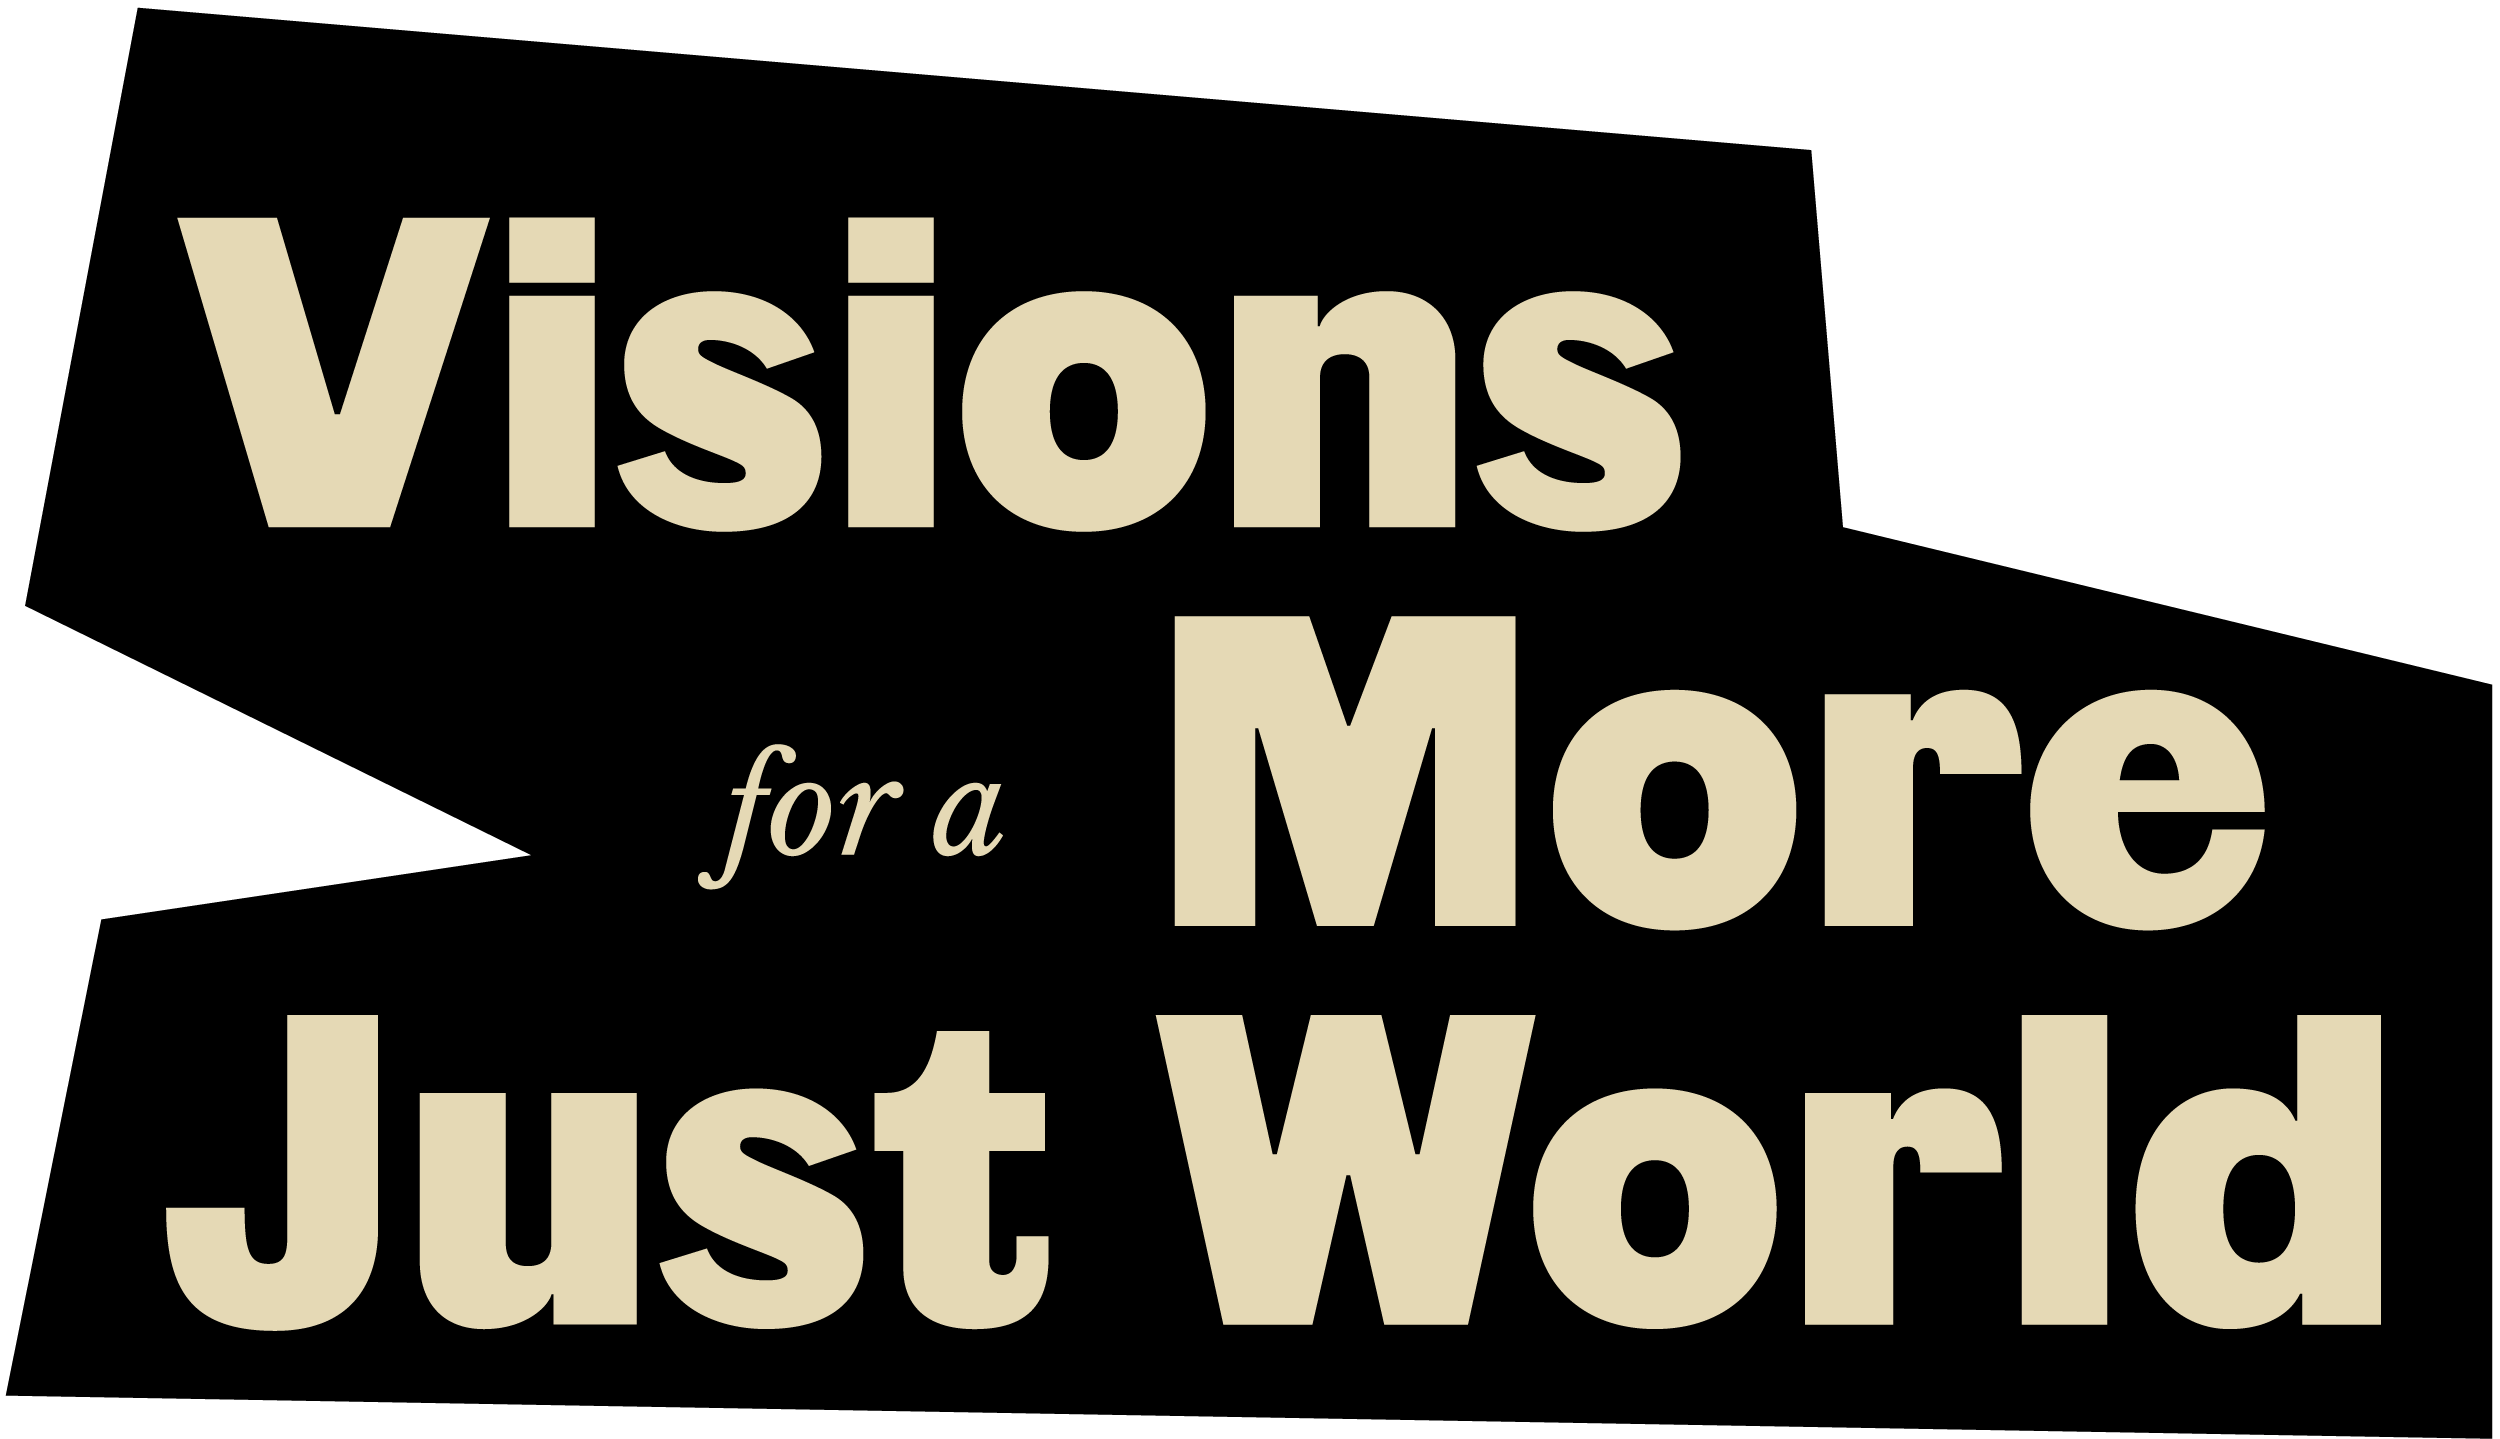 Visions for a more just world